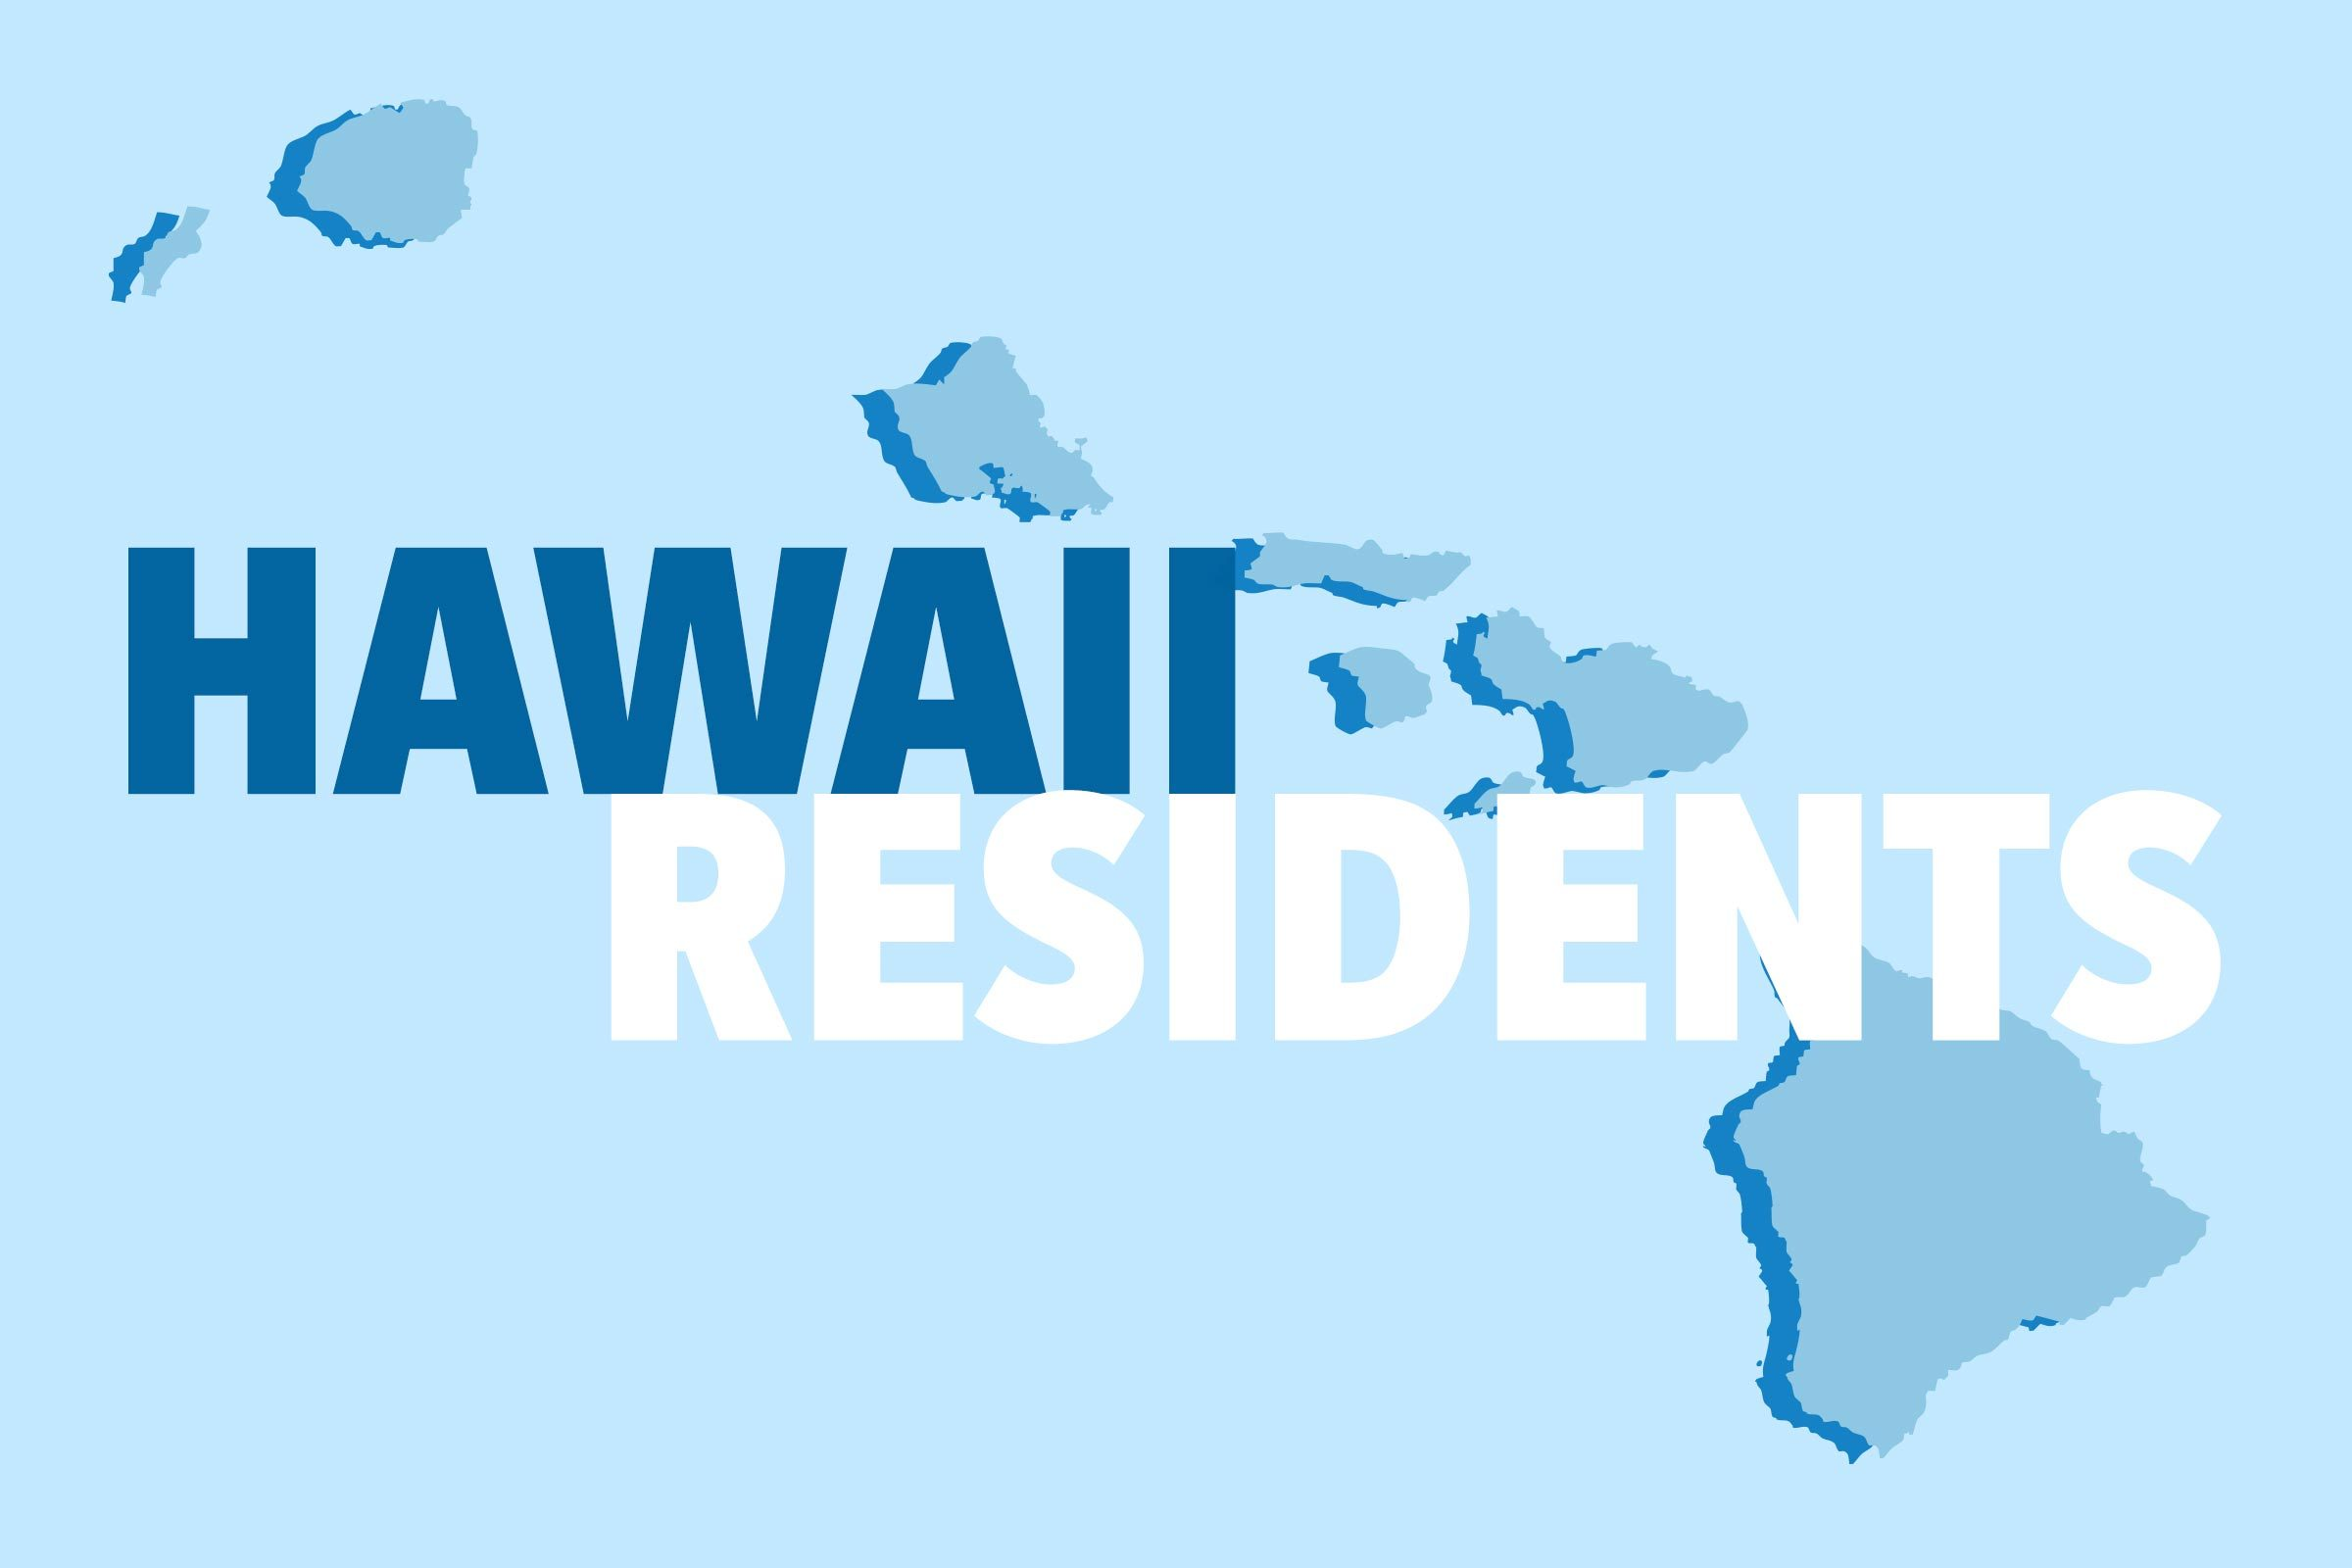 Hawaii Residents